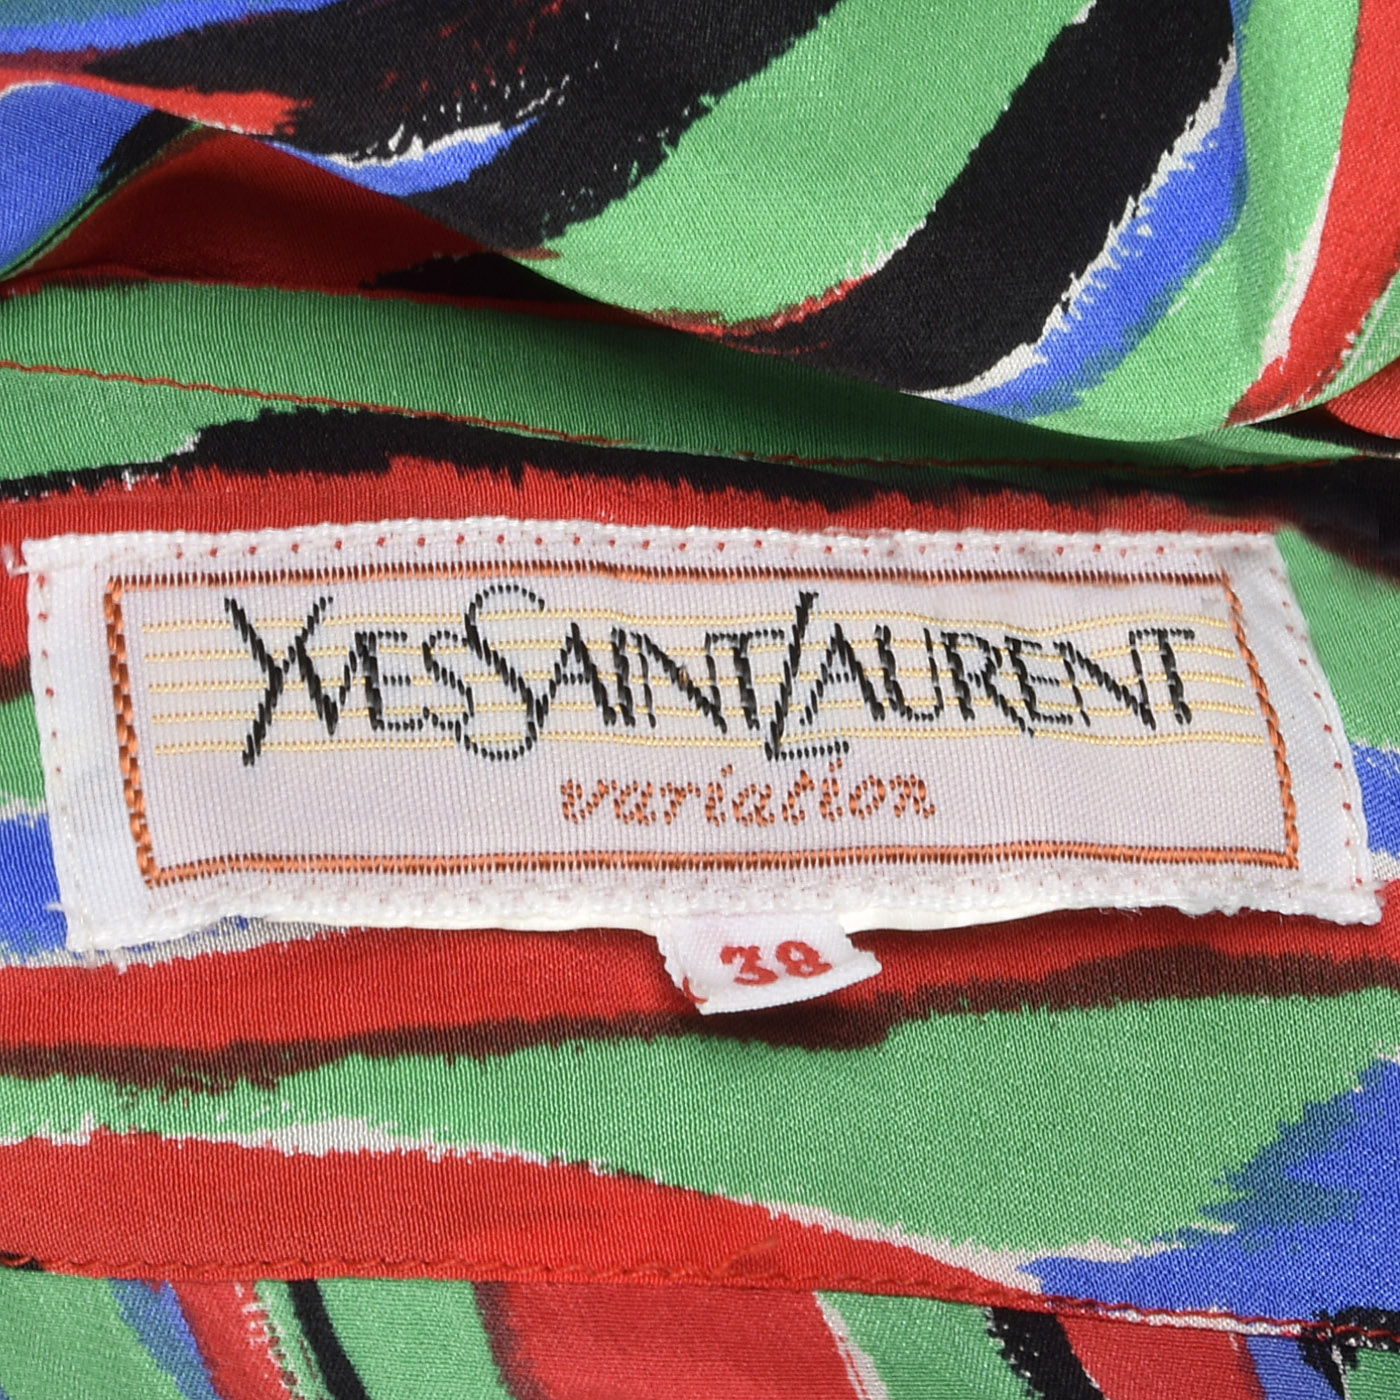 1980s Yves Saint Laurent Colorful Stripe Print Dress